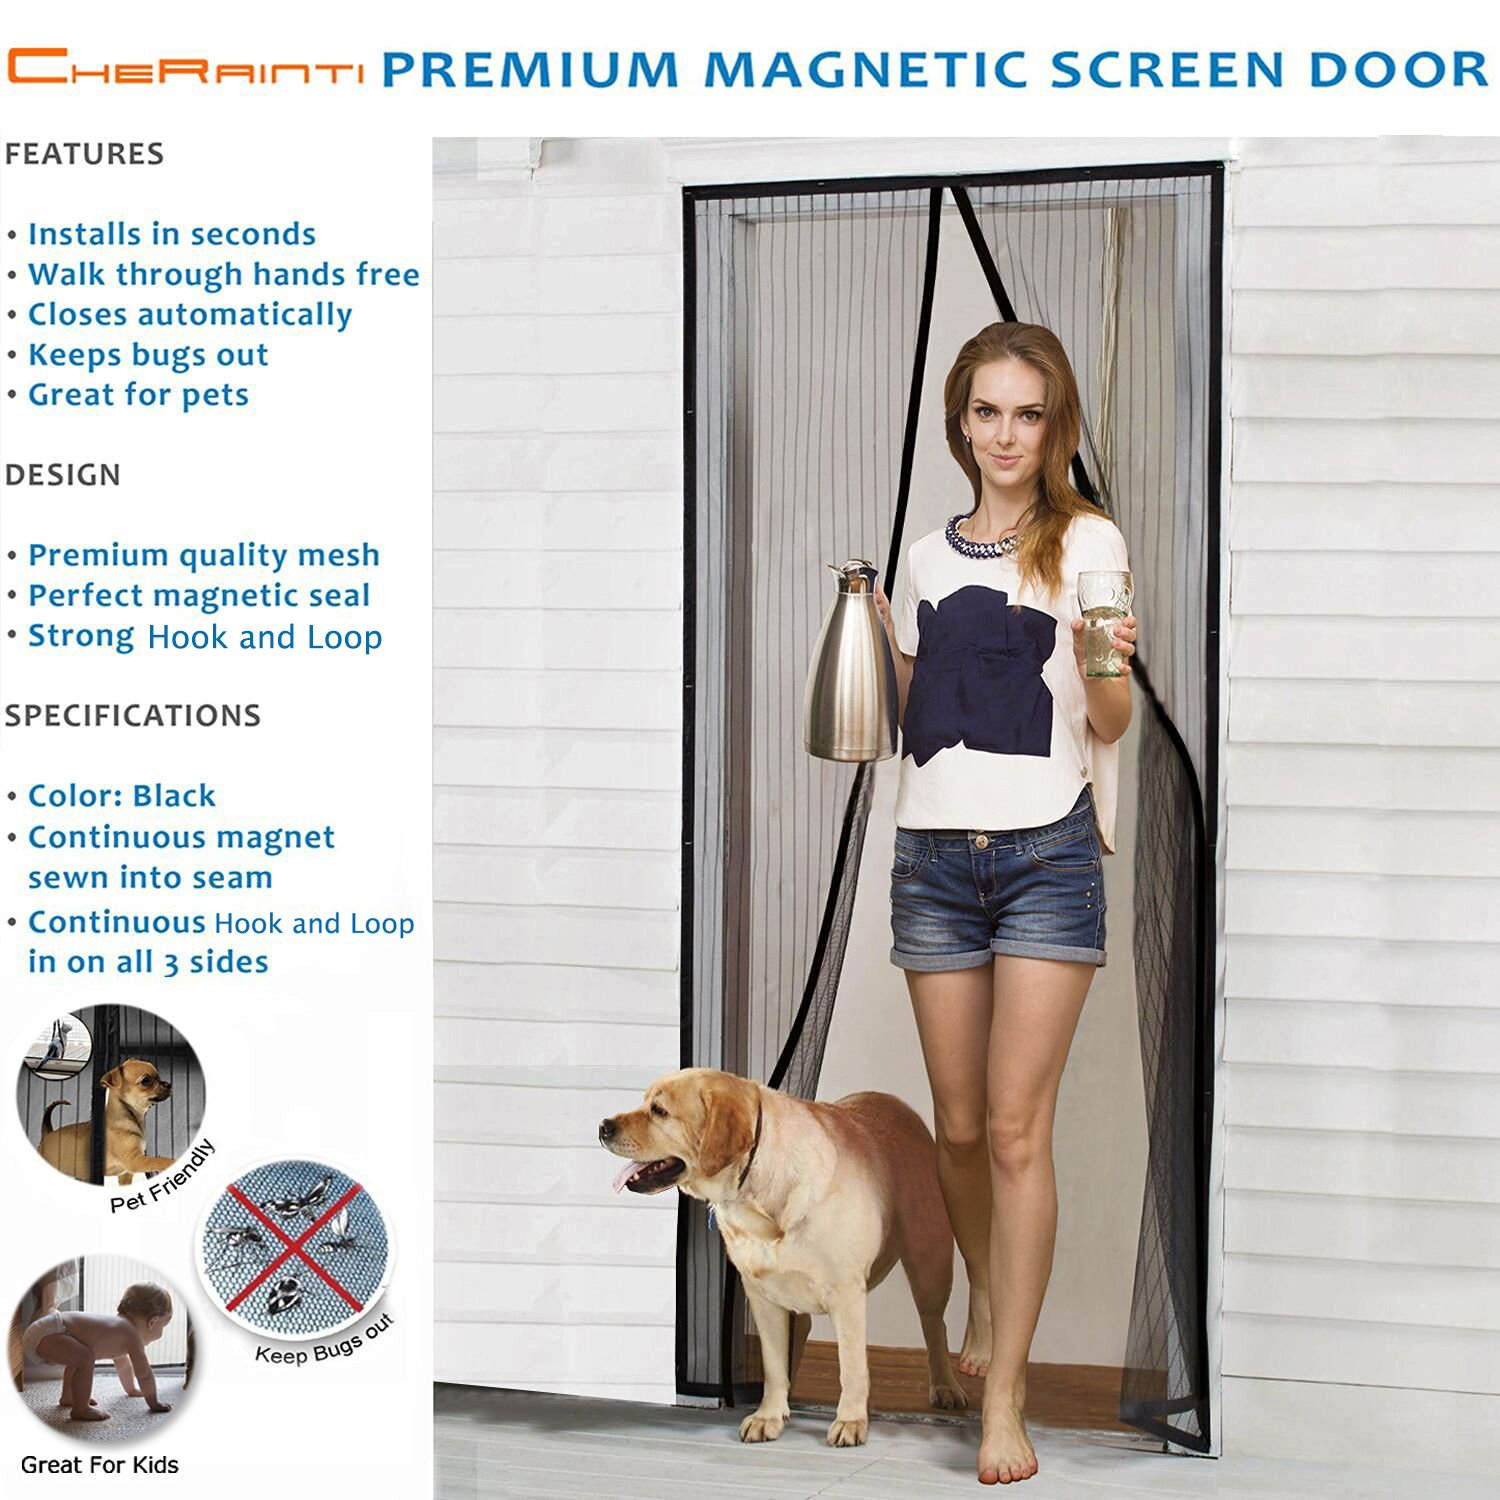 Magnetic screen door hands free mesh curtain with full frame magnetic screen door hands free mesh curtain with full frame hook loop and push pins fly mosquito insects bug proof for sliding glass doors french vtopaller Image collections